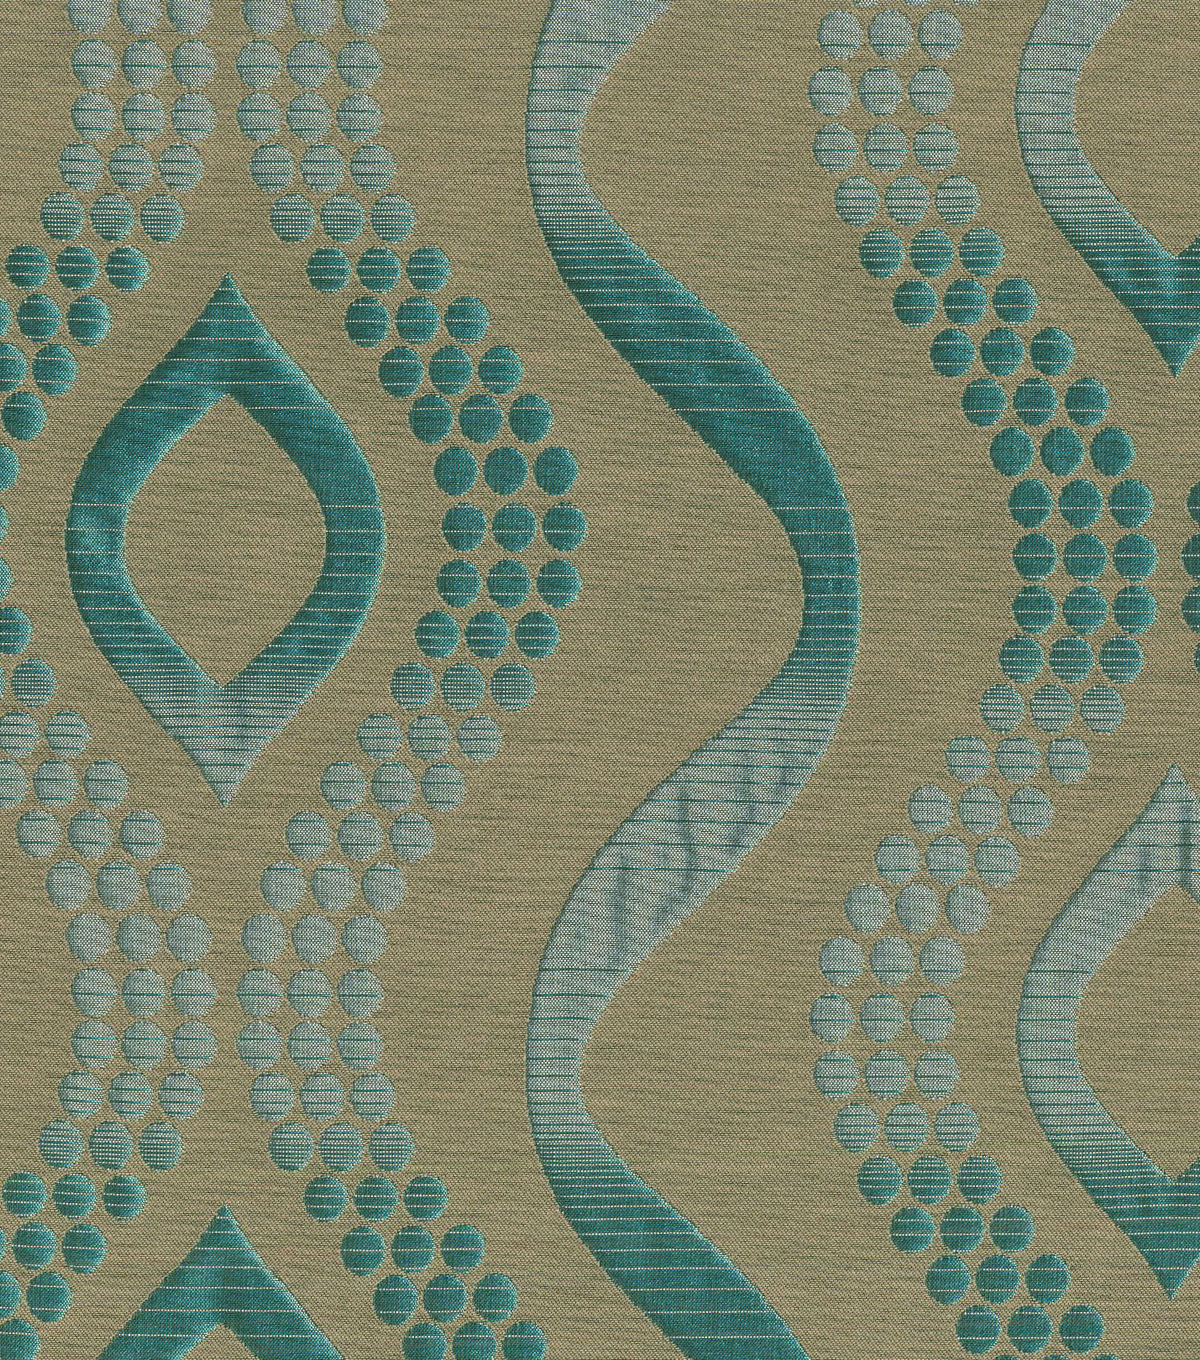 Home Decor 8\u0022x8\u0022 Fabric Swatch-Elite Caprizzio Teal